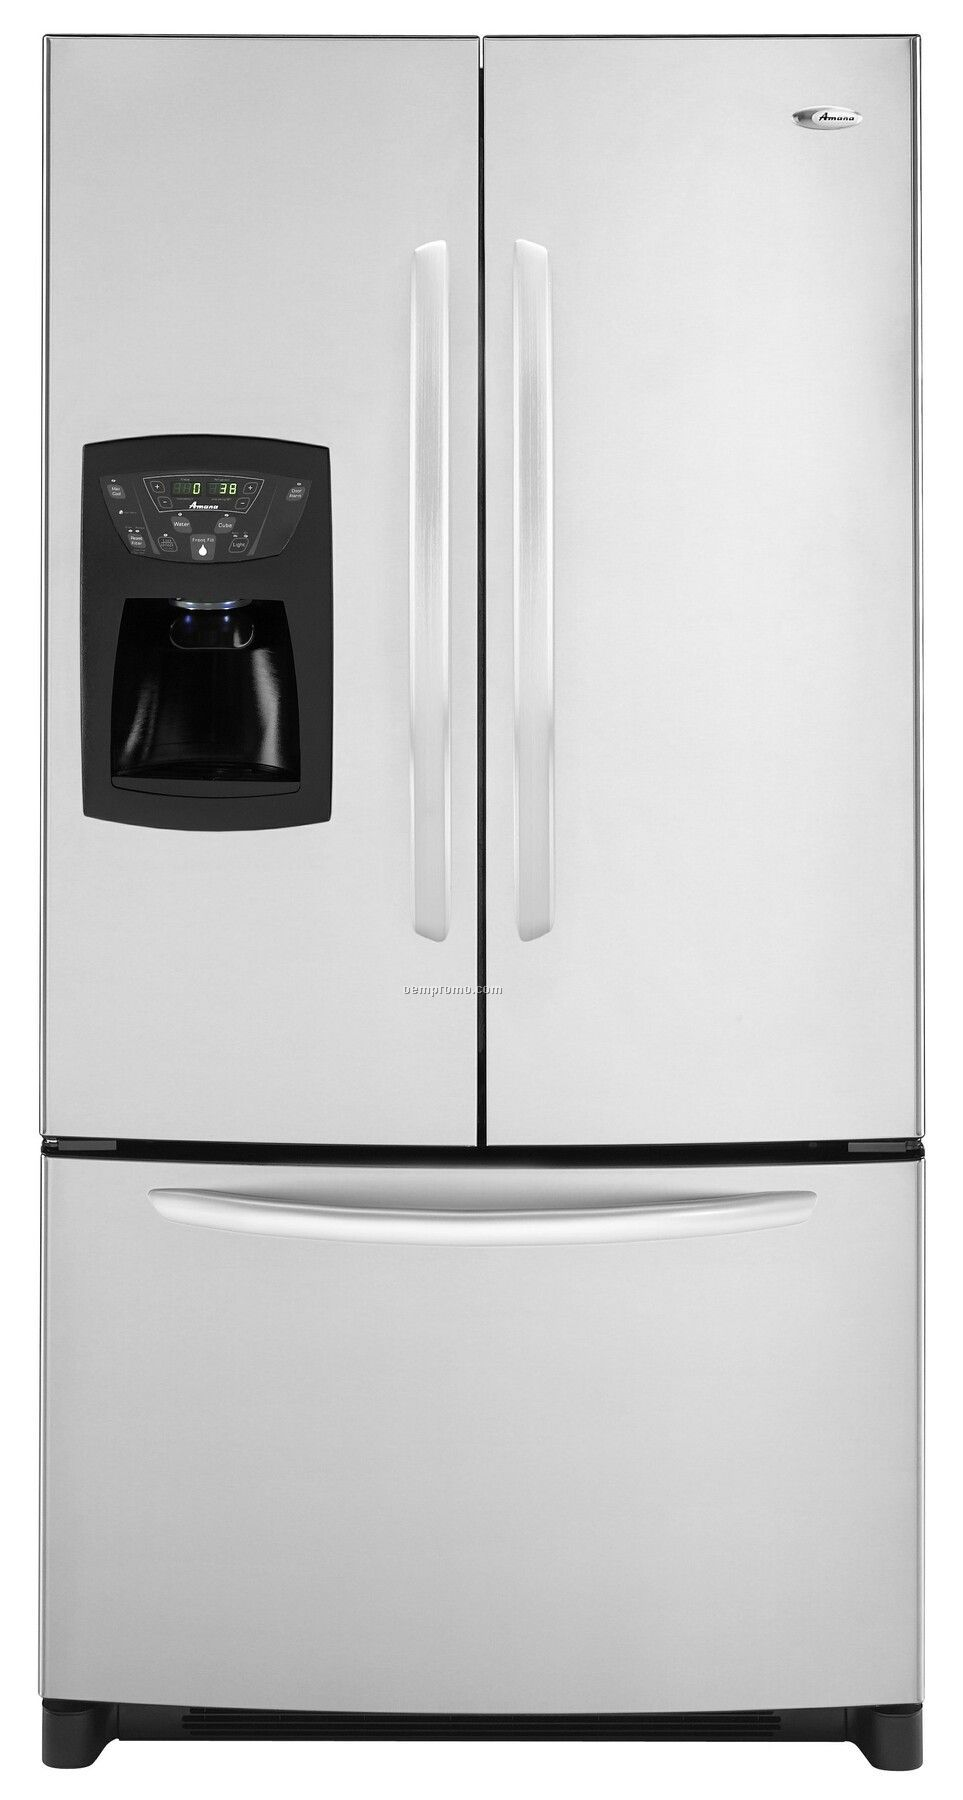 Amana 25 Cubic Foot French Door Refrigerator (Stainless Steel),China Wholesale Amana 25 Cubic ...